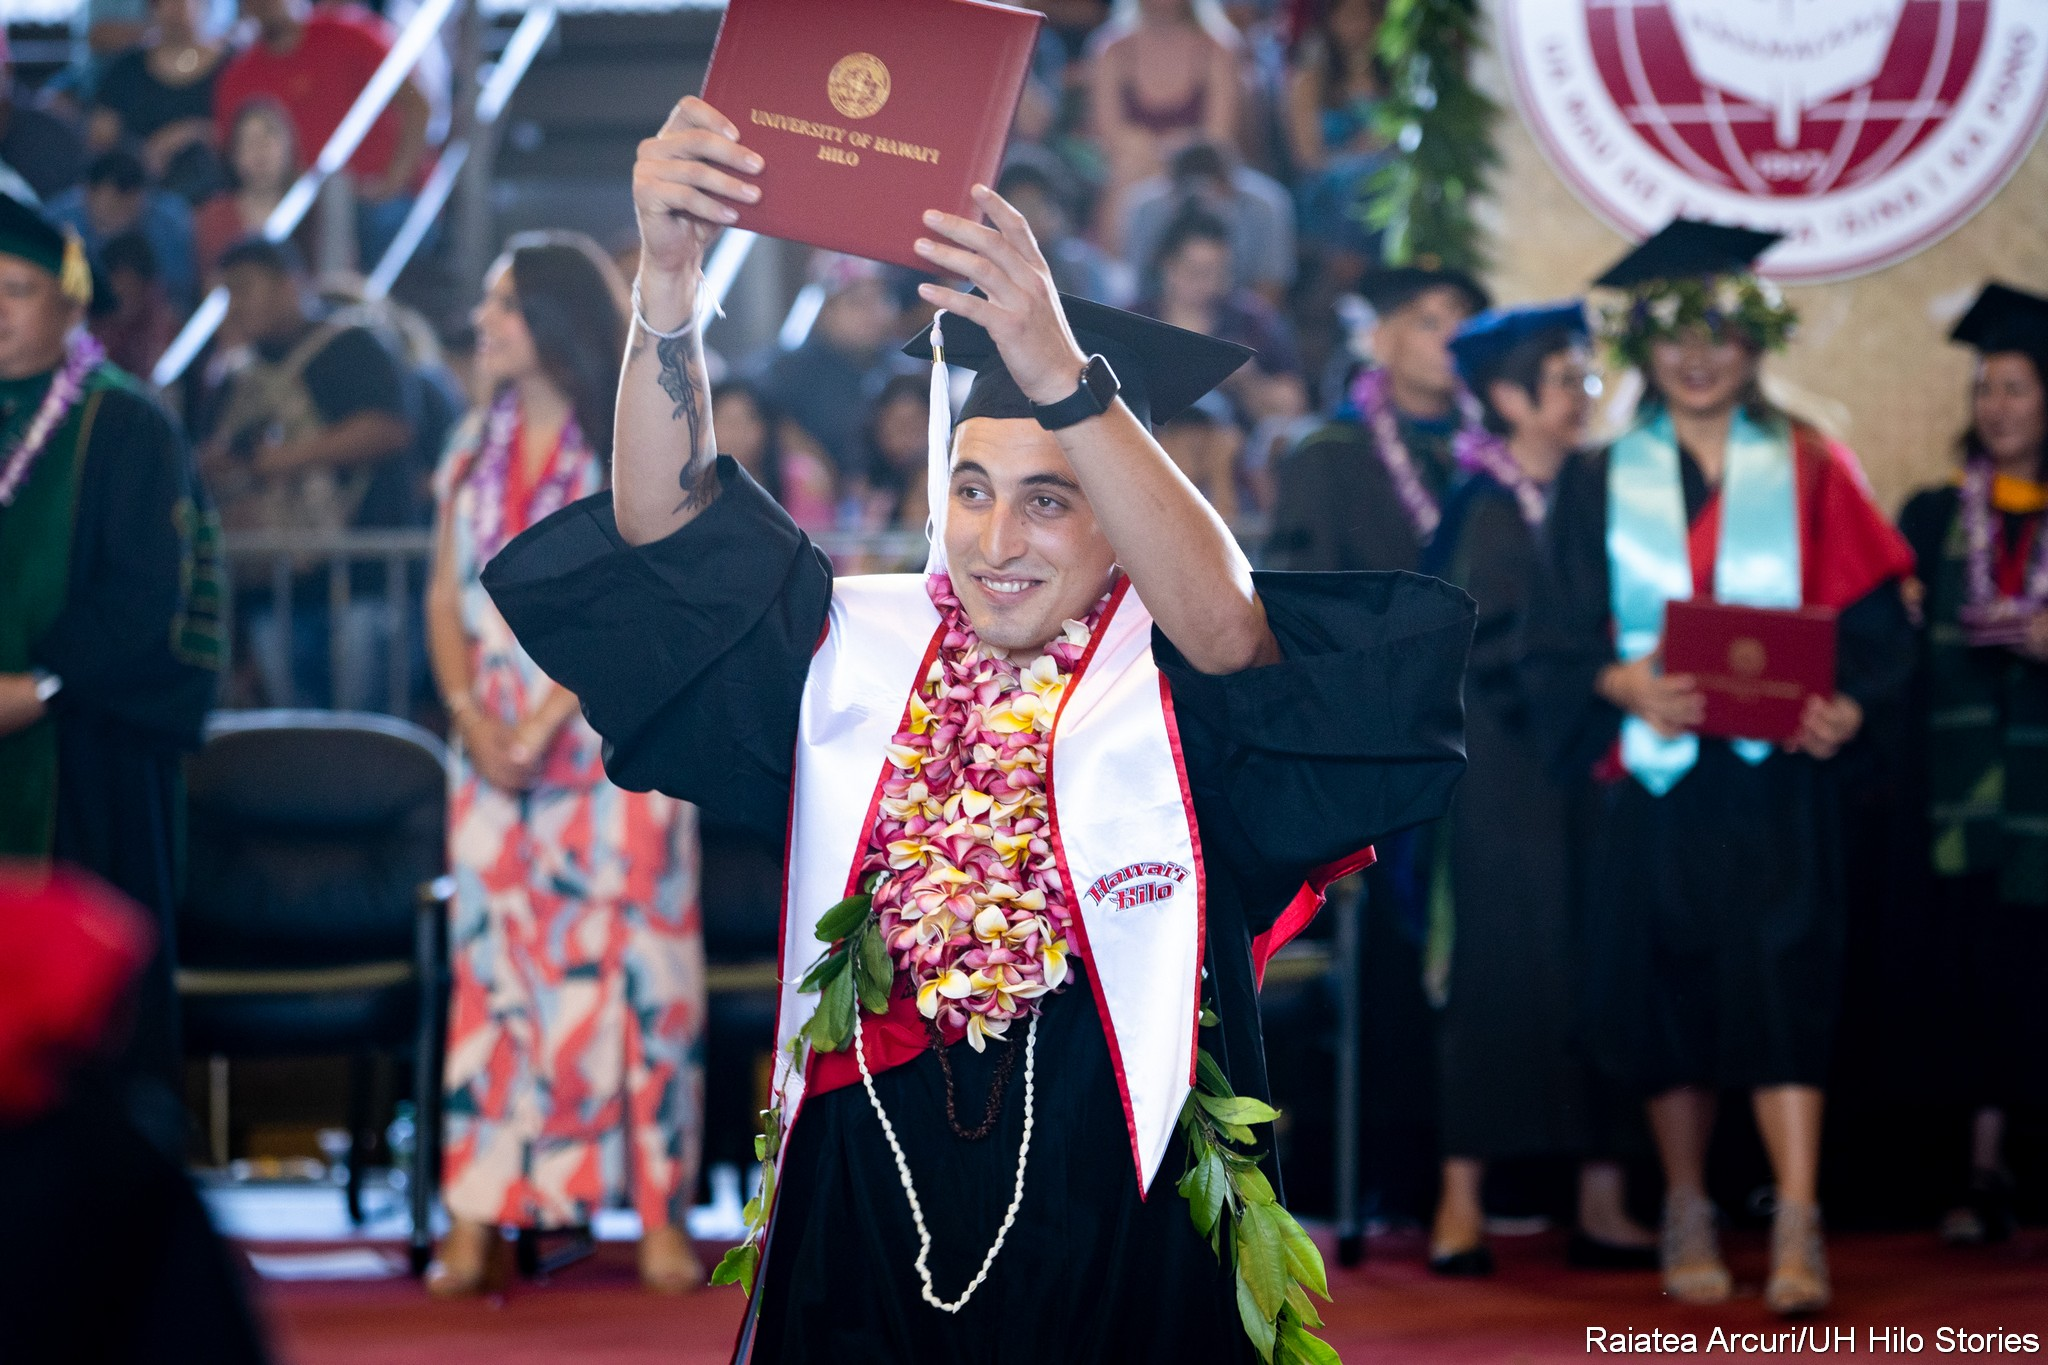 Male graduate with white shashshows diploma to audience members as he isleaving dais with diploma.